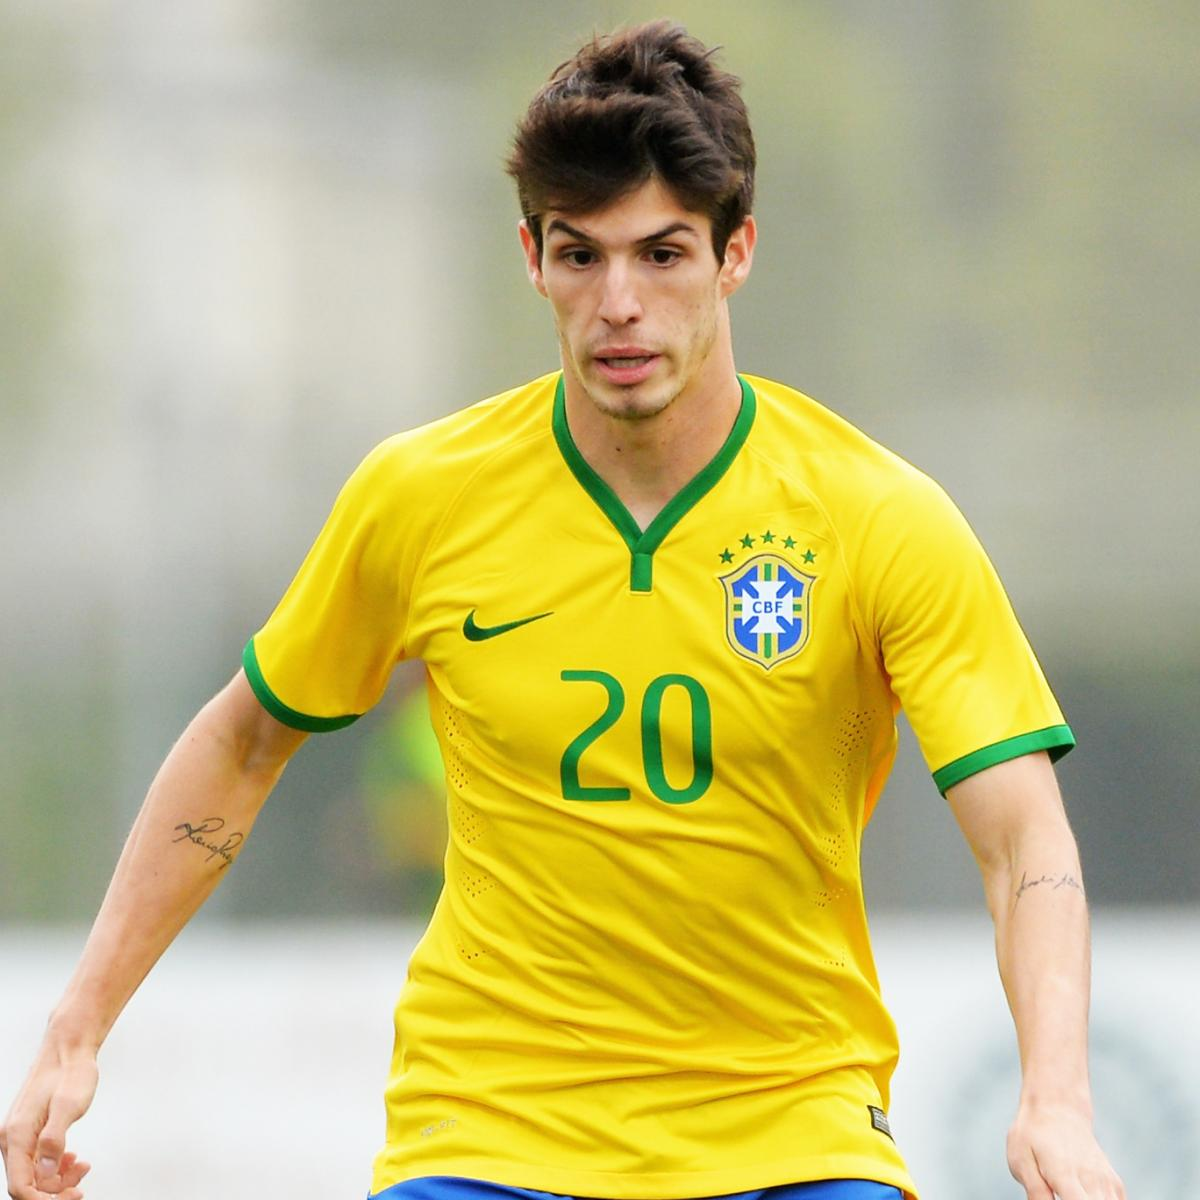 Lucas Soccer Player: Lucas Piazon Exclusive: Brazil Star On Chelsea Hopes And